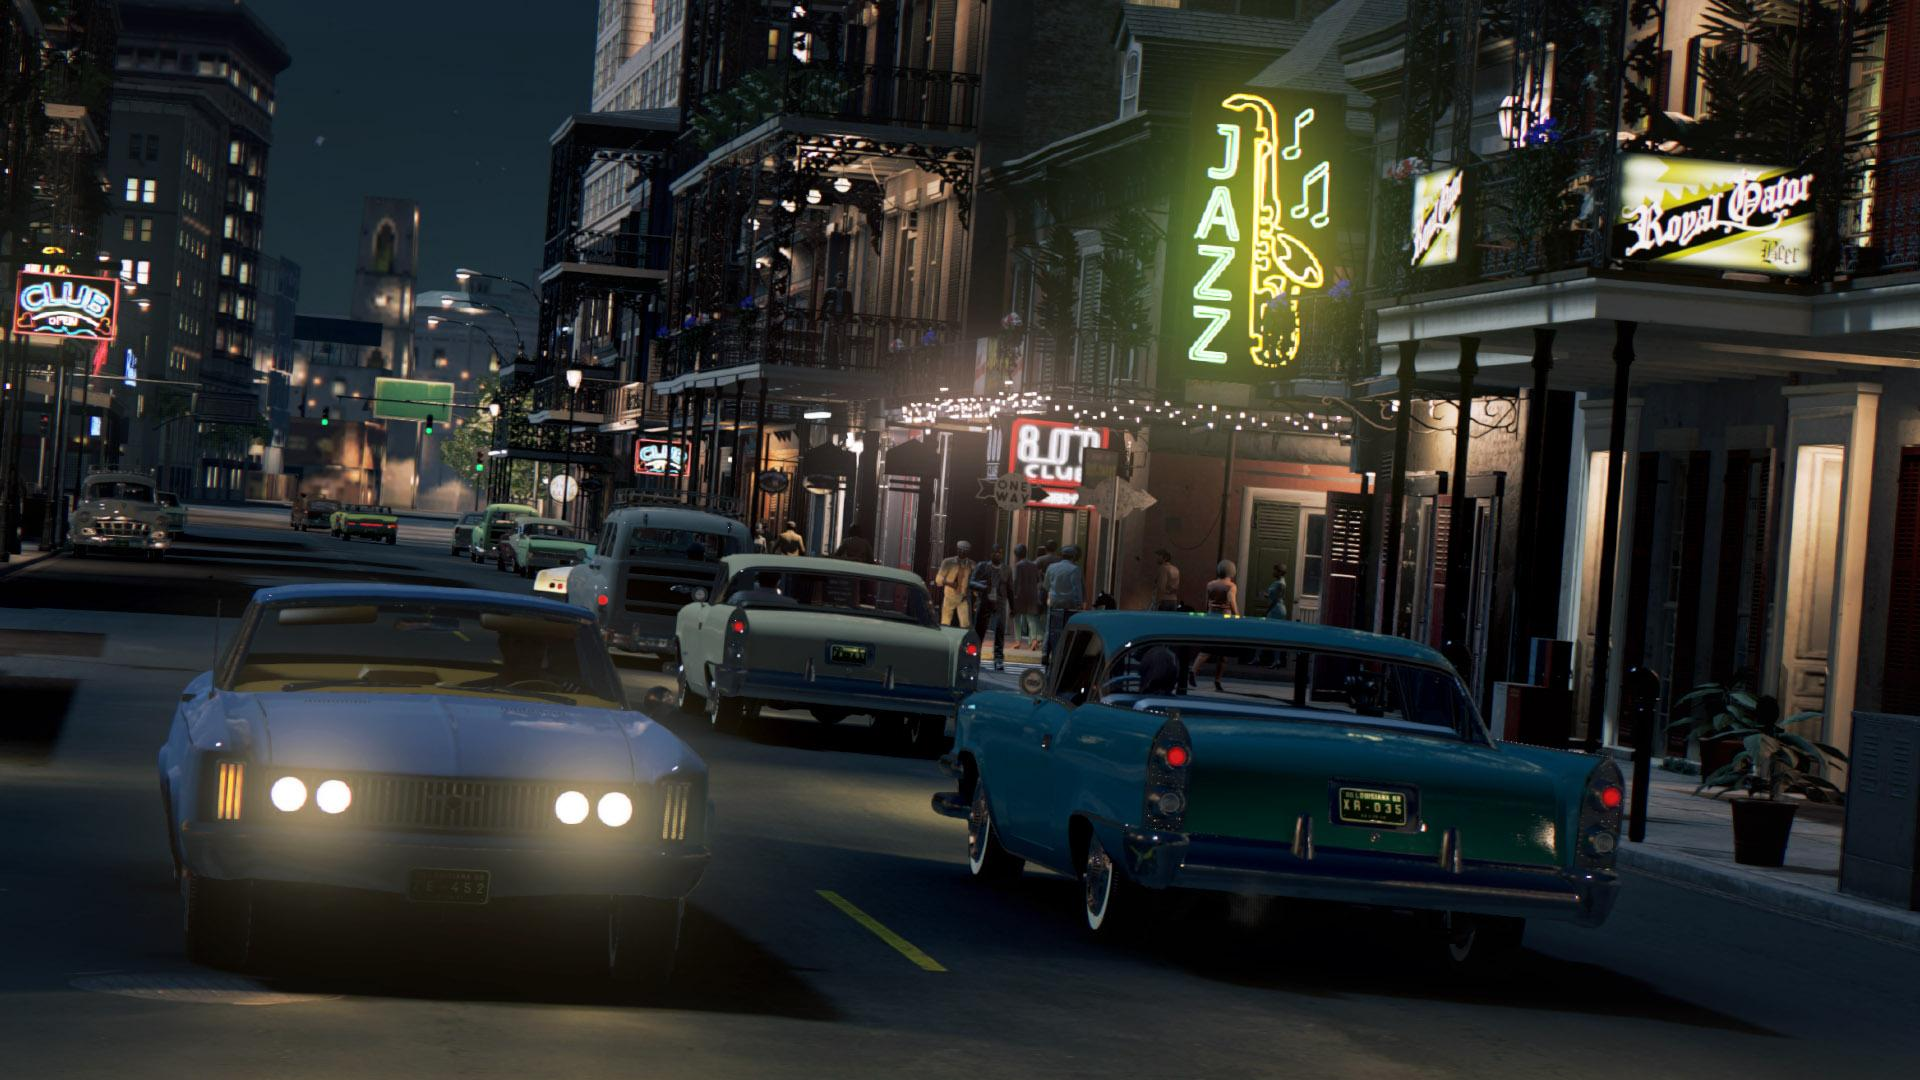 2K發行的《四海兄弟III》現正熱賣中 - XFastest - 20160812_Mafia3_New-Orleans-PR-Event_Enviro_EarlyGameDistricts_3-2.jpg